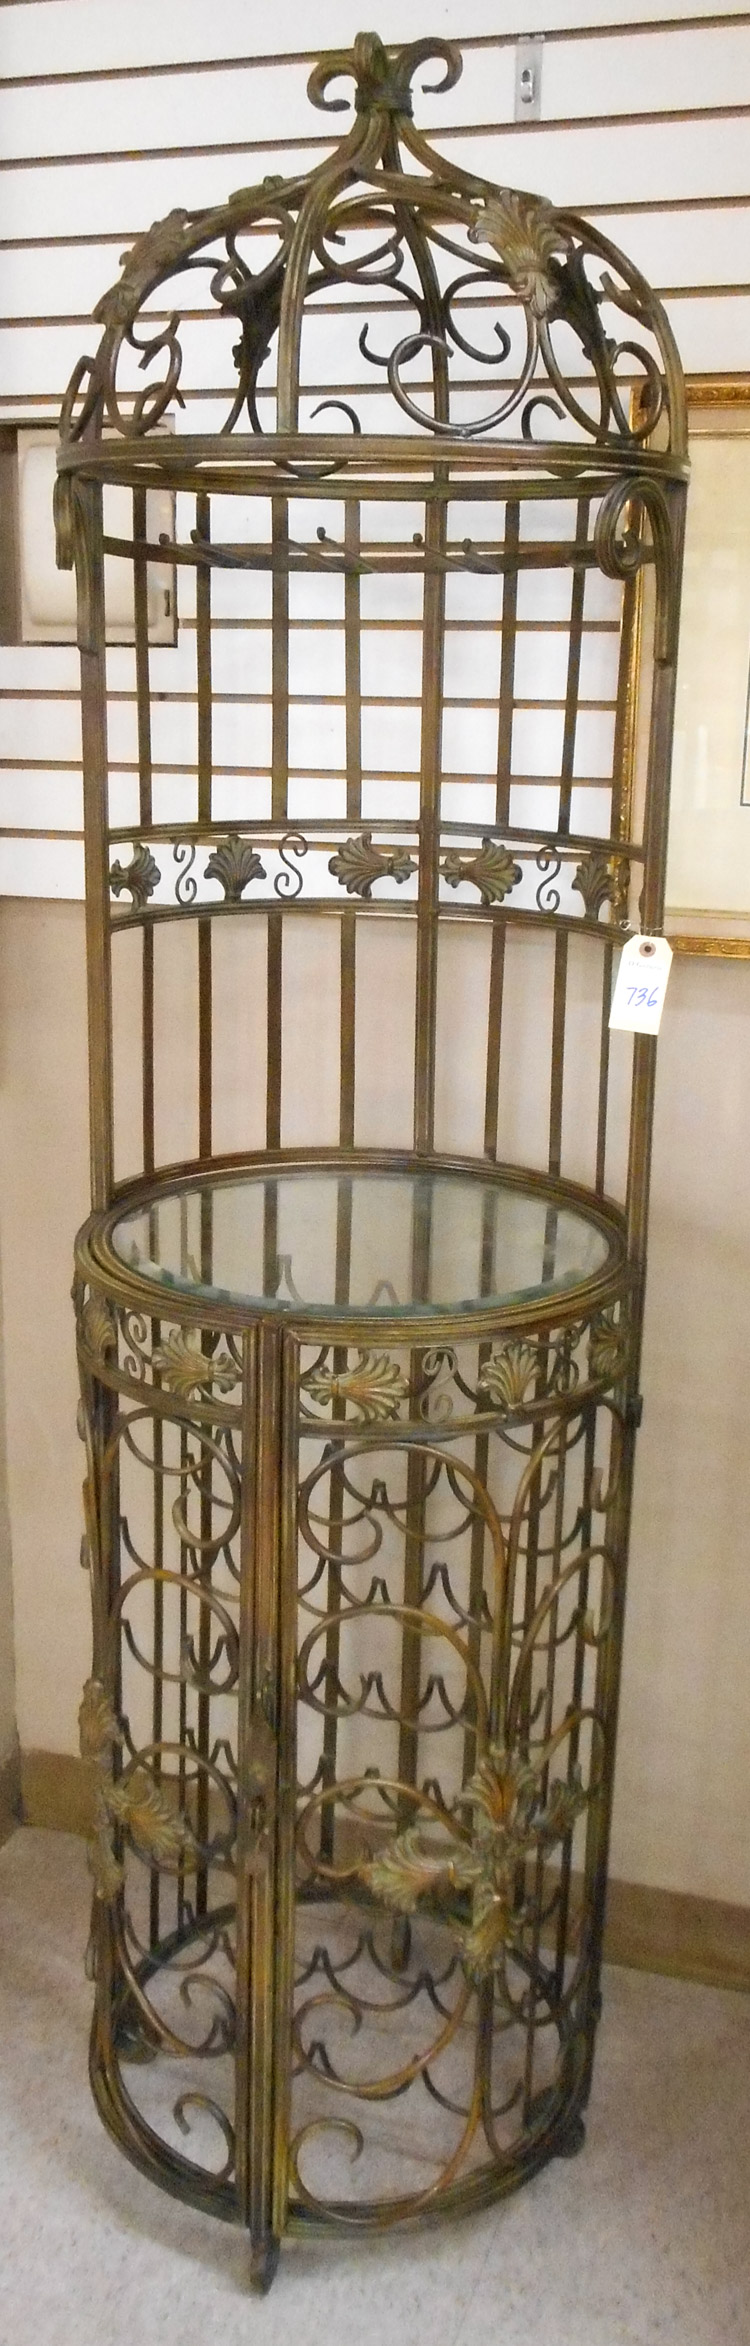 BRONZED WROUGHT IRON WINE SERVING STAND AND CELLAR